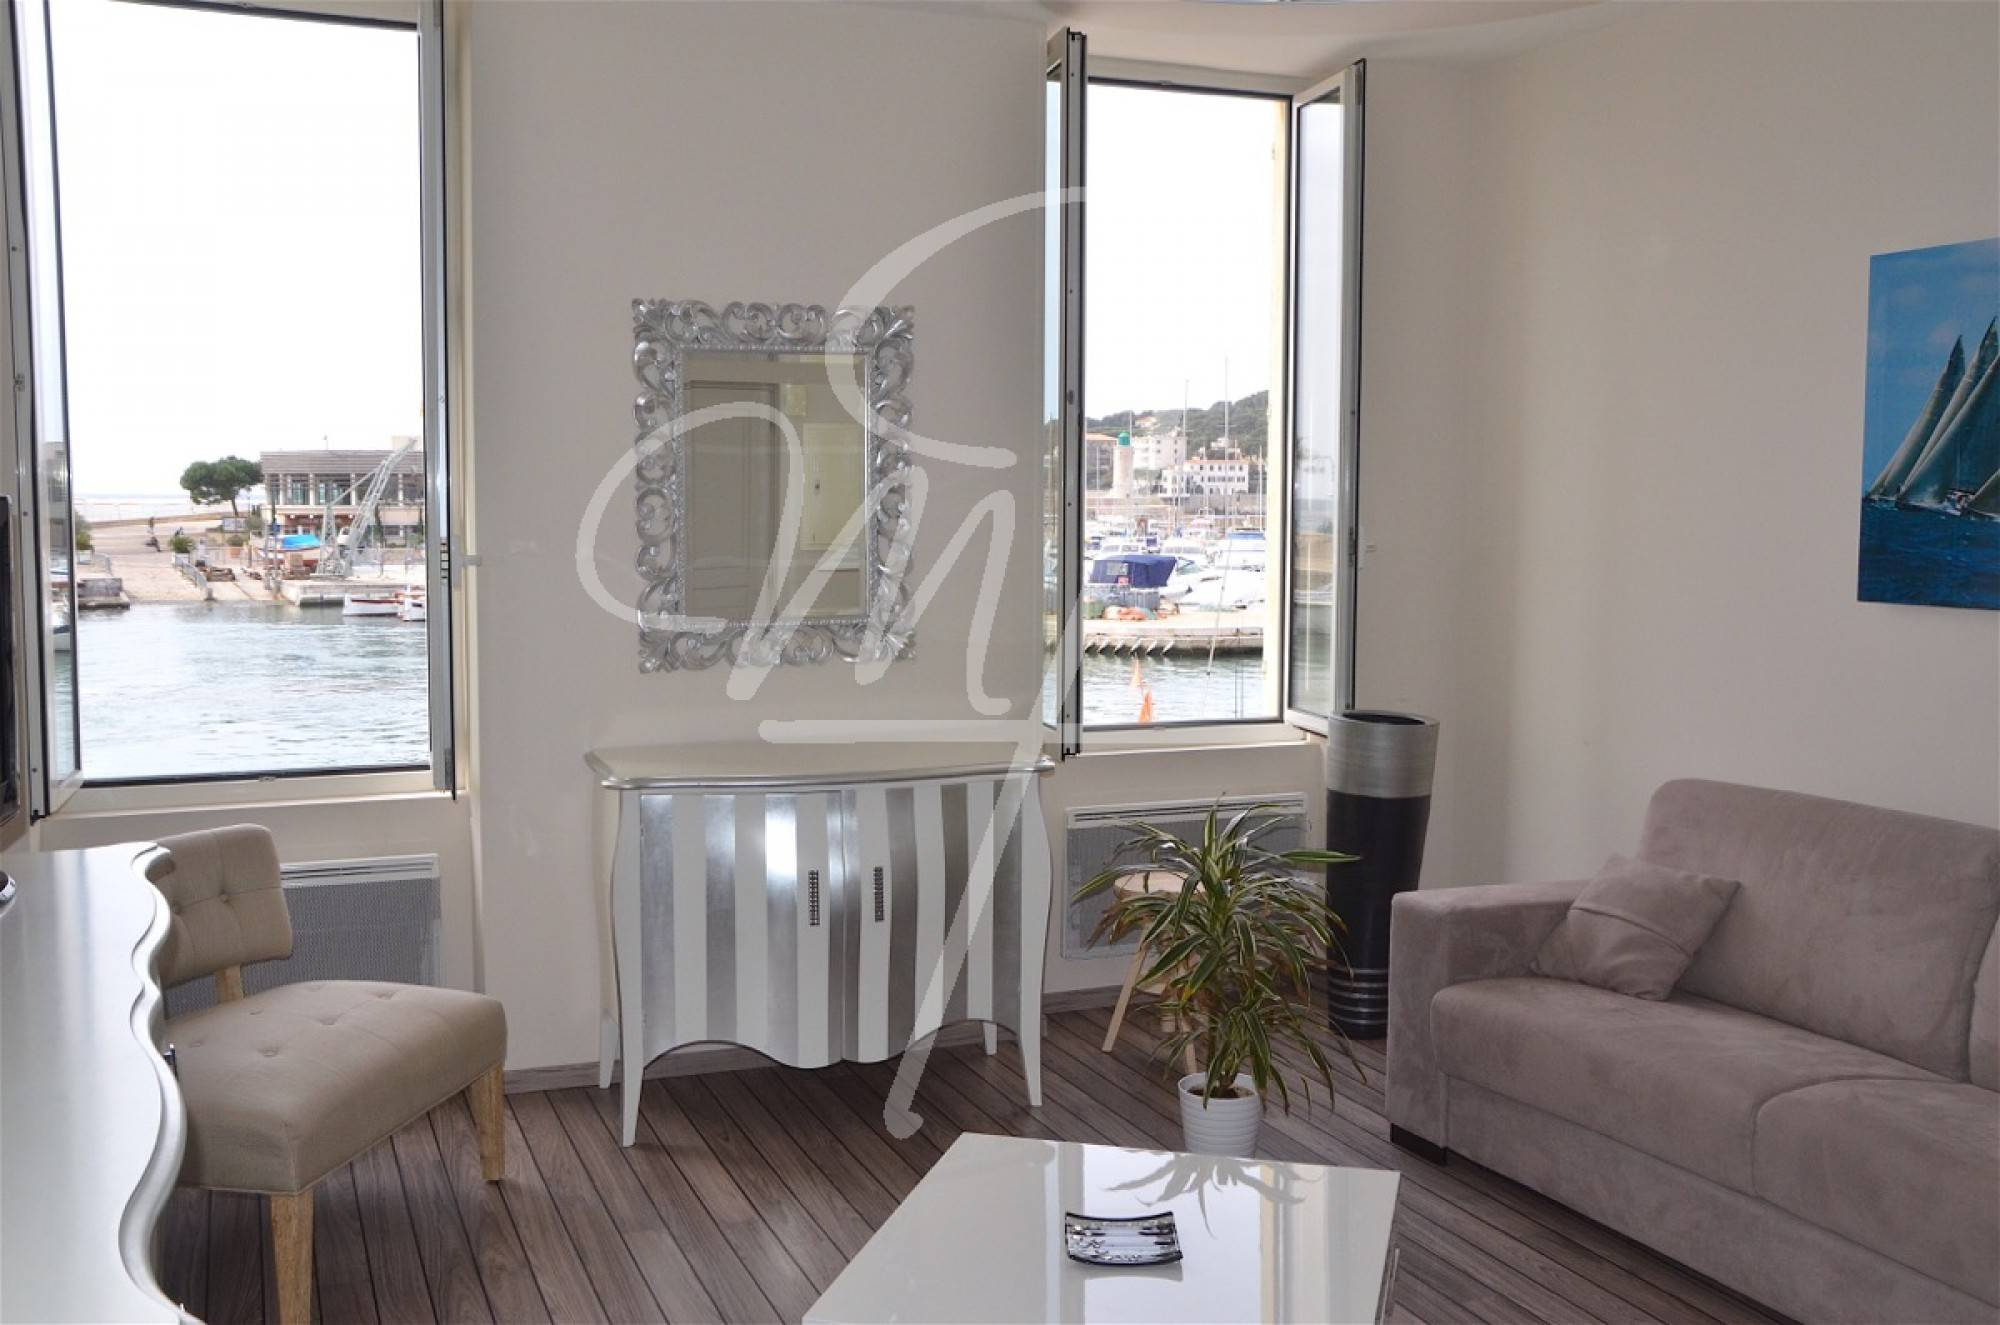 Vente appartement contemporain T2 cassis port